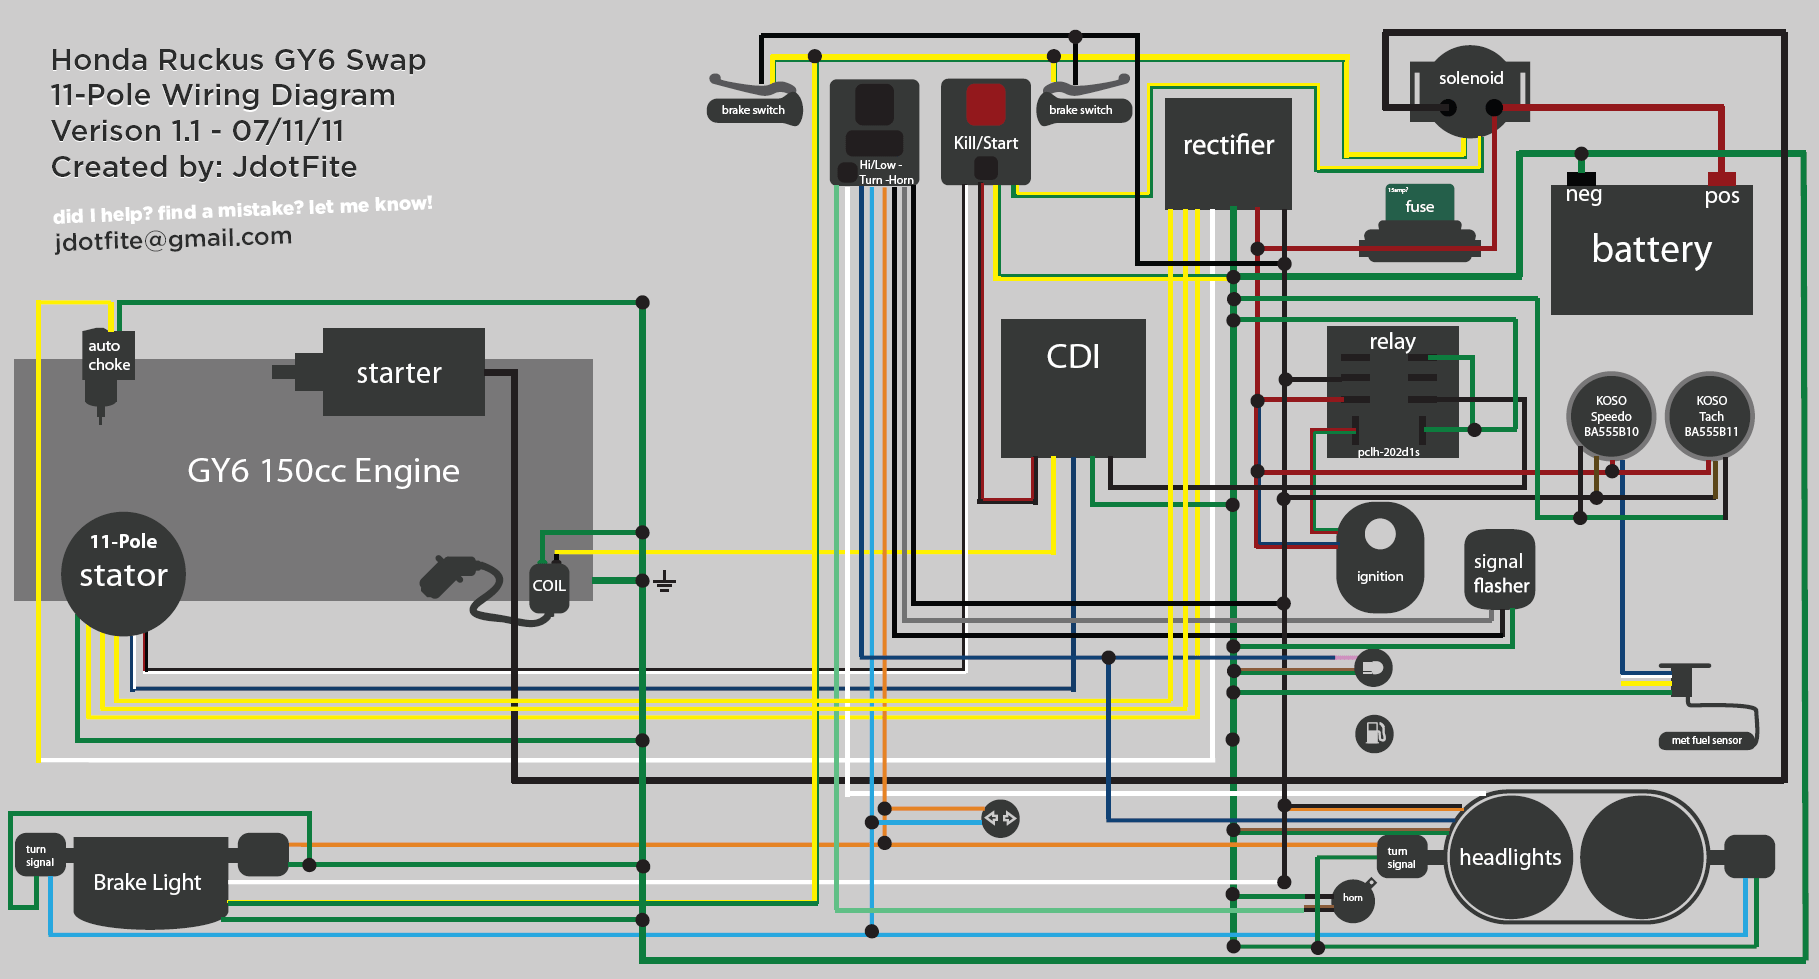 ruckus gy6 wiring diagram gy6 stator wiring gy6 engine wiring \u2022 wiring diagrams j squared co  at fashall.co